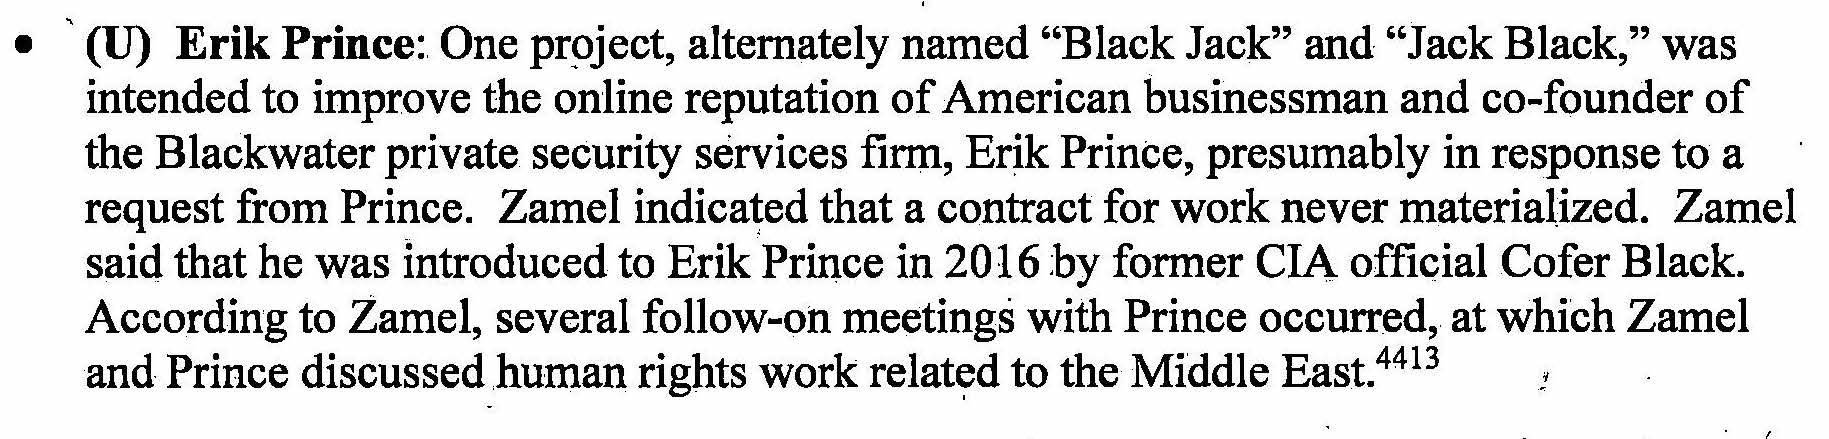 Senate report on Erik Prince